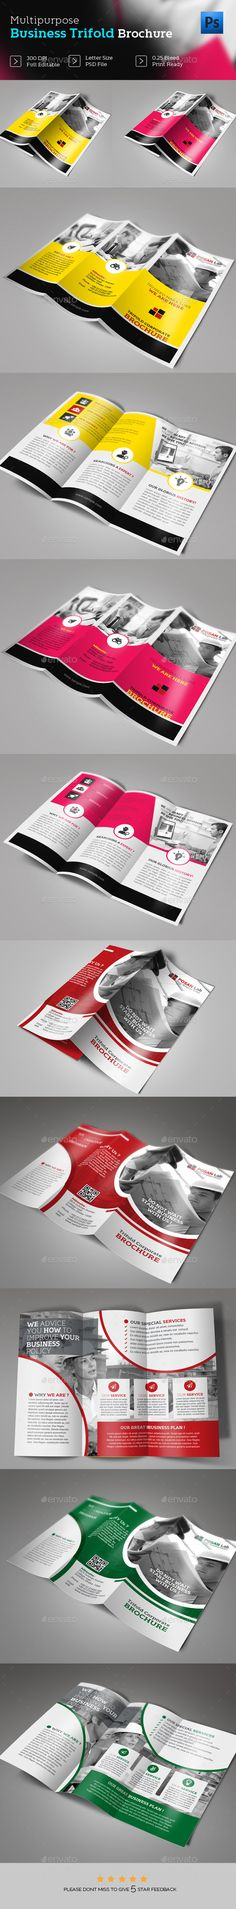 Trifold Brochure Design Bundle Templates PSD. Download here: https://graphicriver.net/item/trifold-brochure-design-bundle-/17604354?ref=ksioks